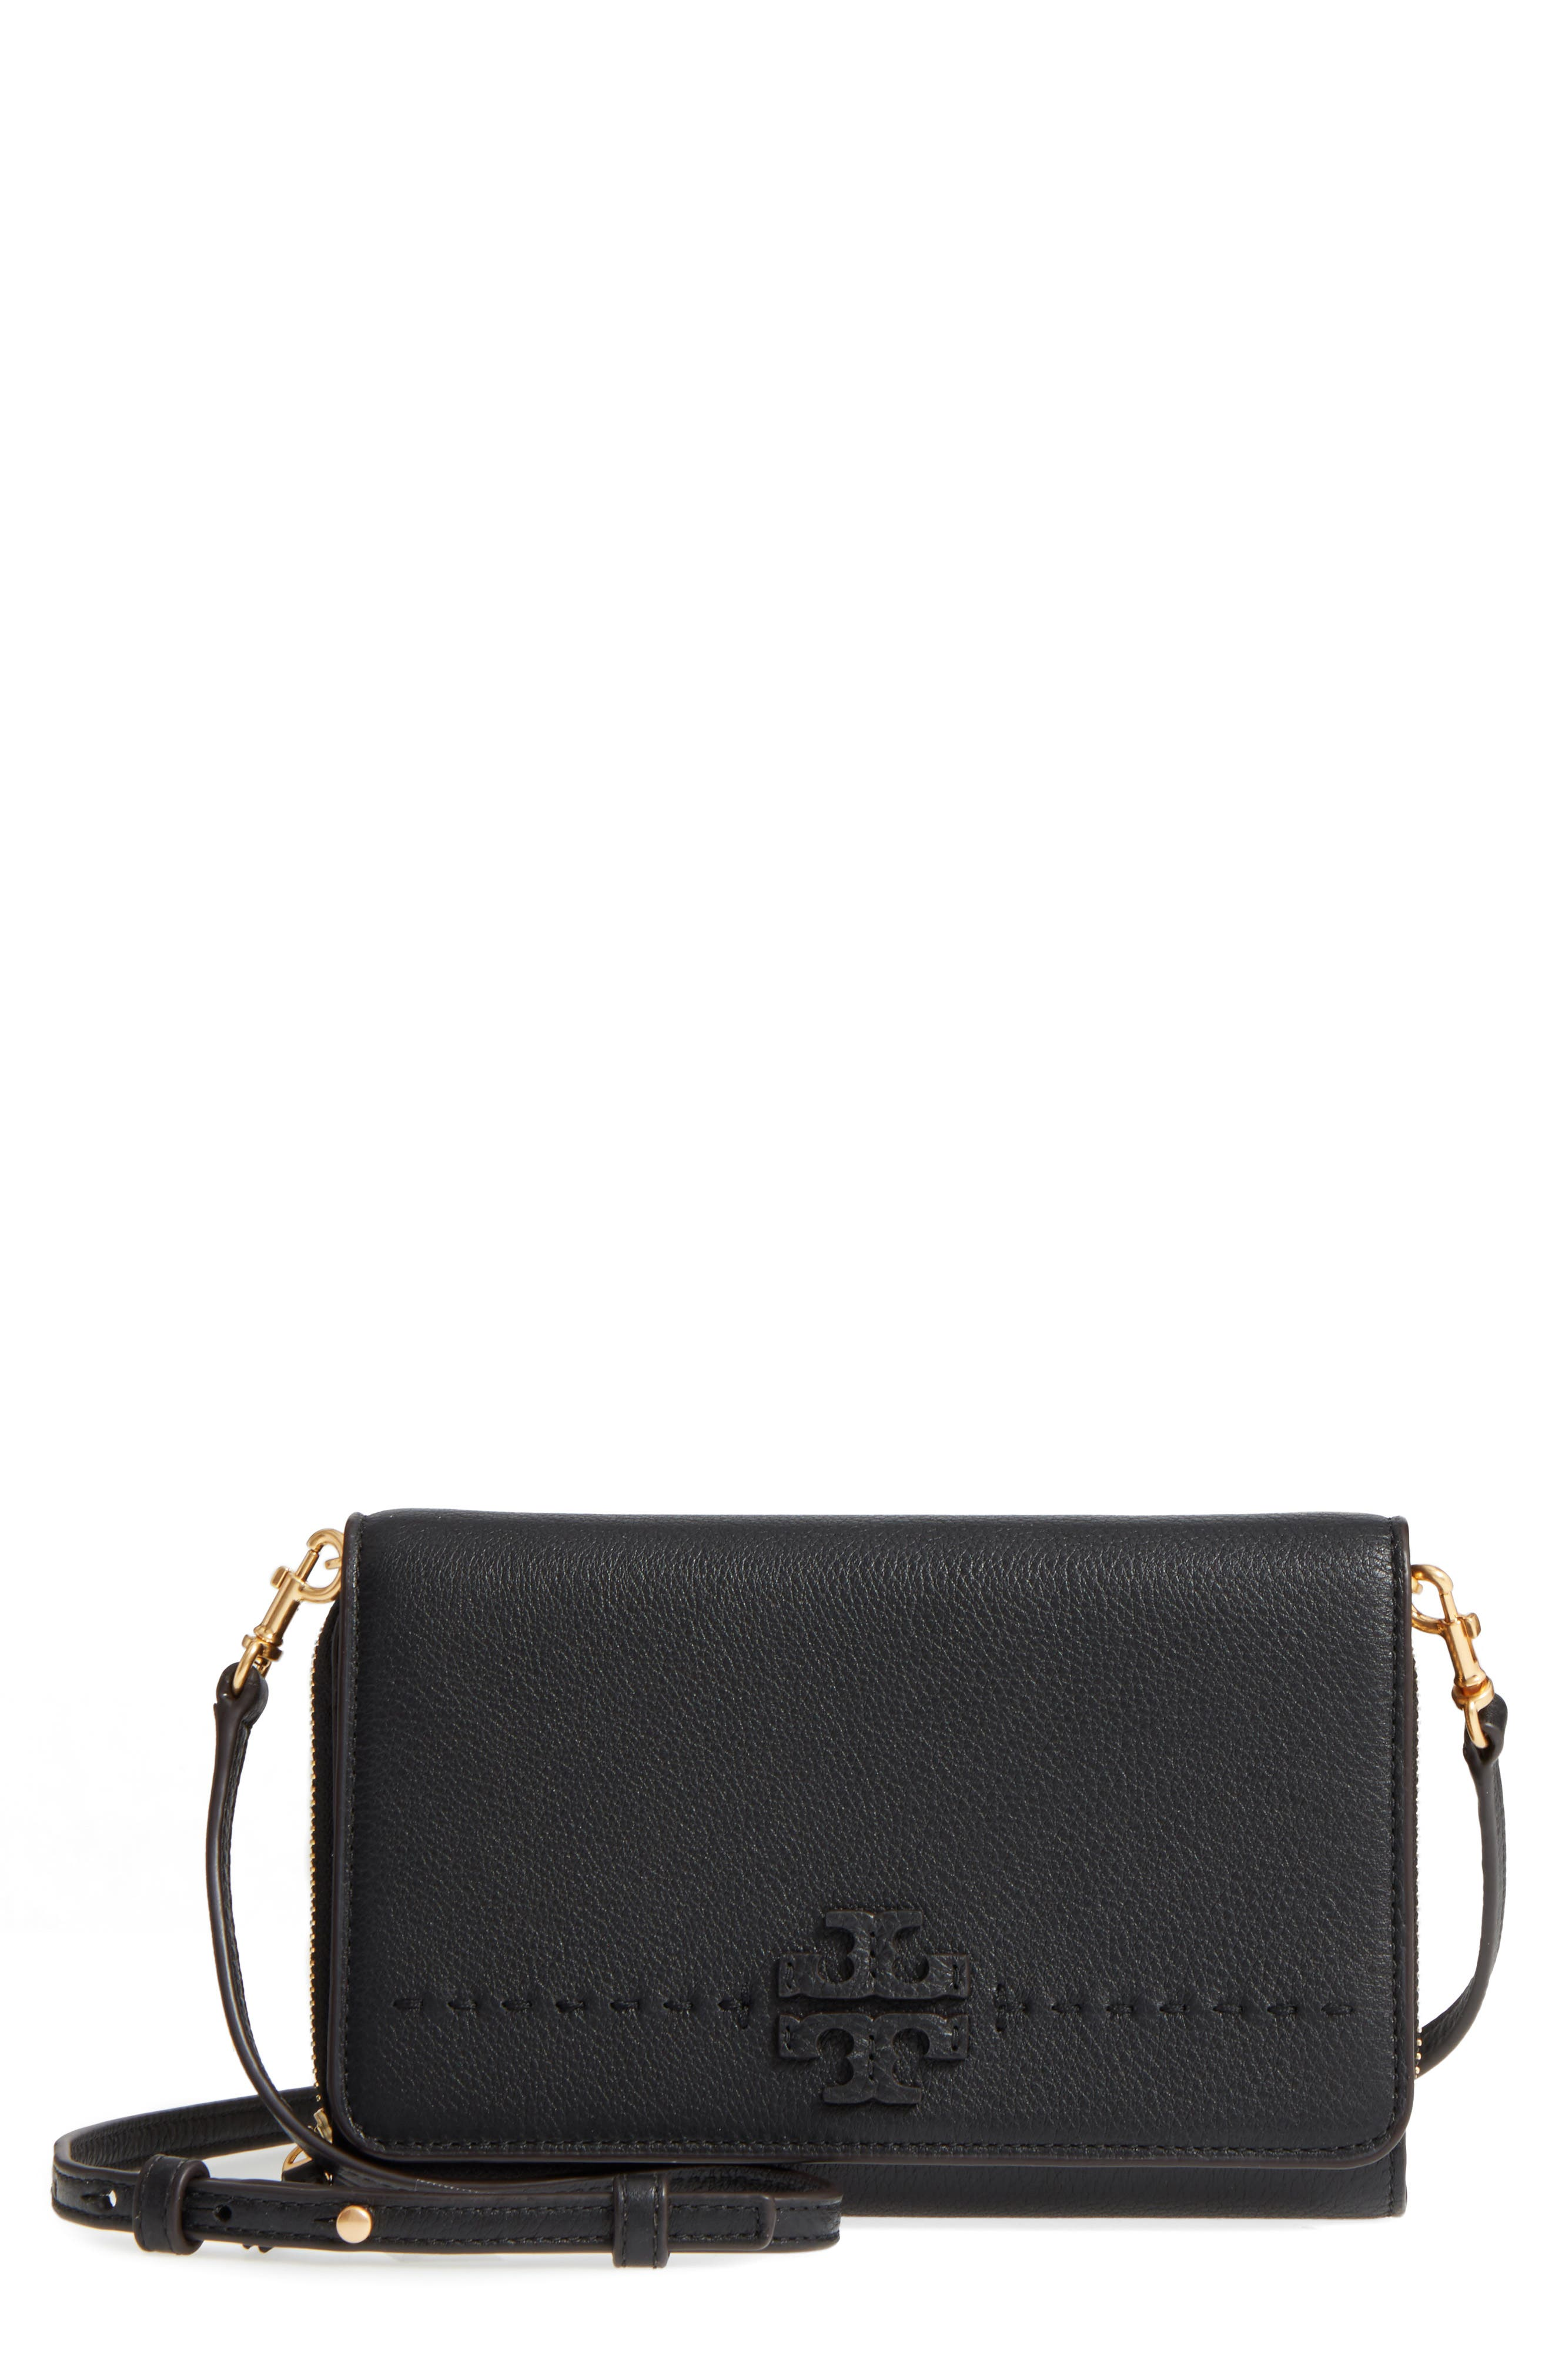 TORY BURCH, McGraw Leather Crossbody Wallet, Main thumbnail 1, color, 001